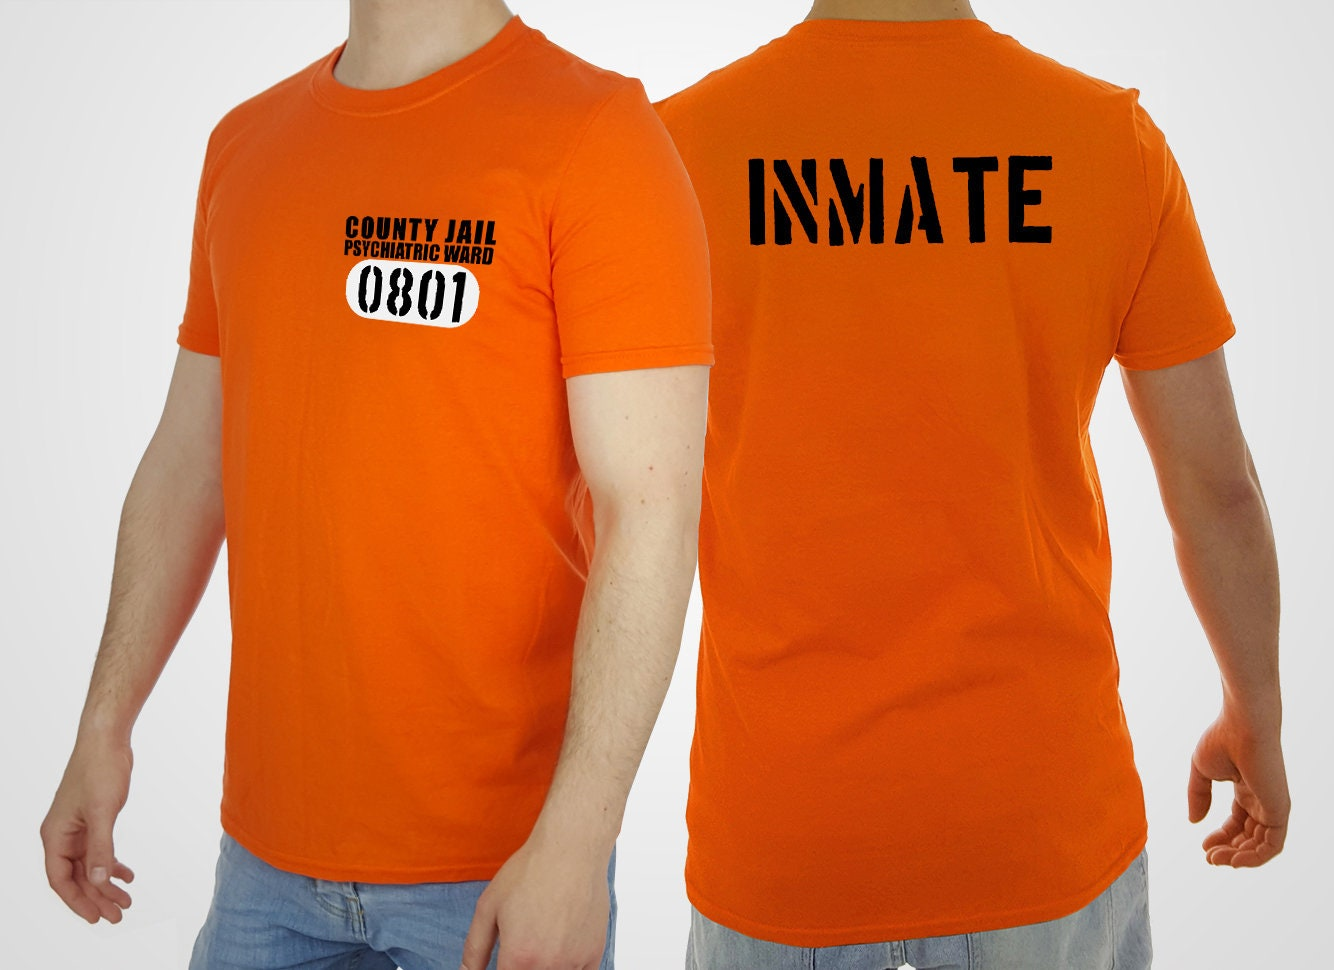 prison inmate t-shirt county jail tshirt psycho insane top | etsy